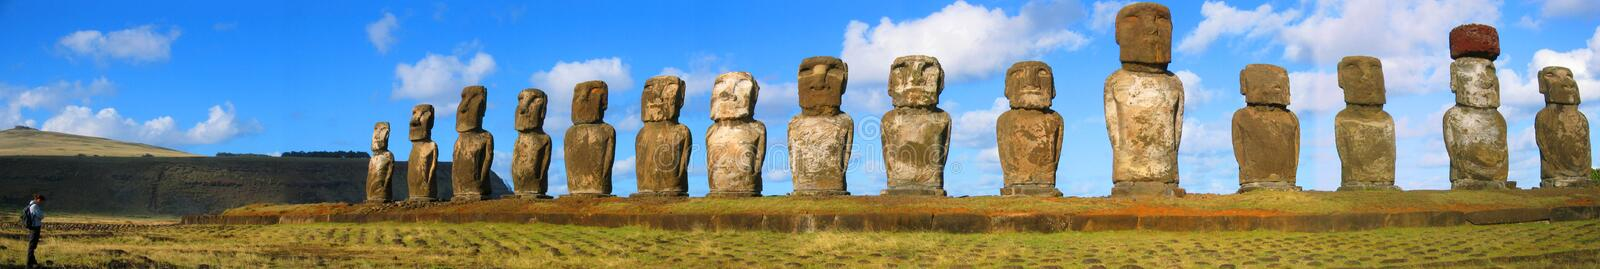 Sentinels royalty free stock photography